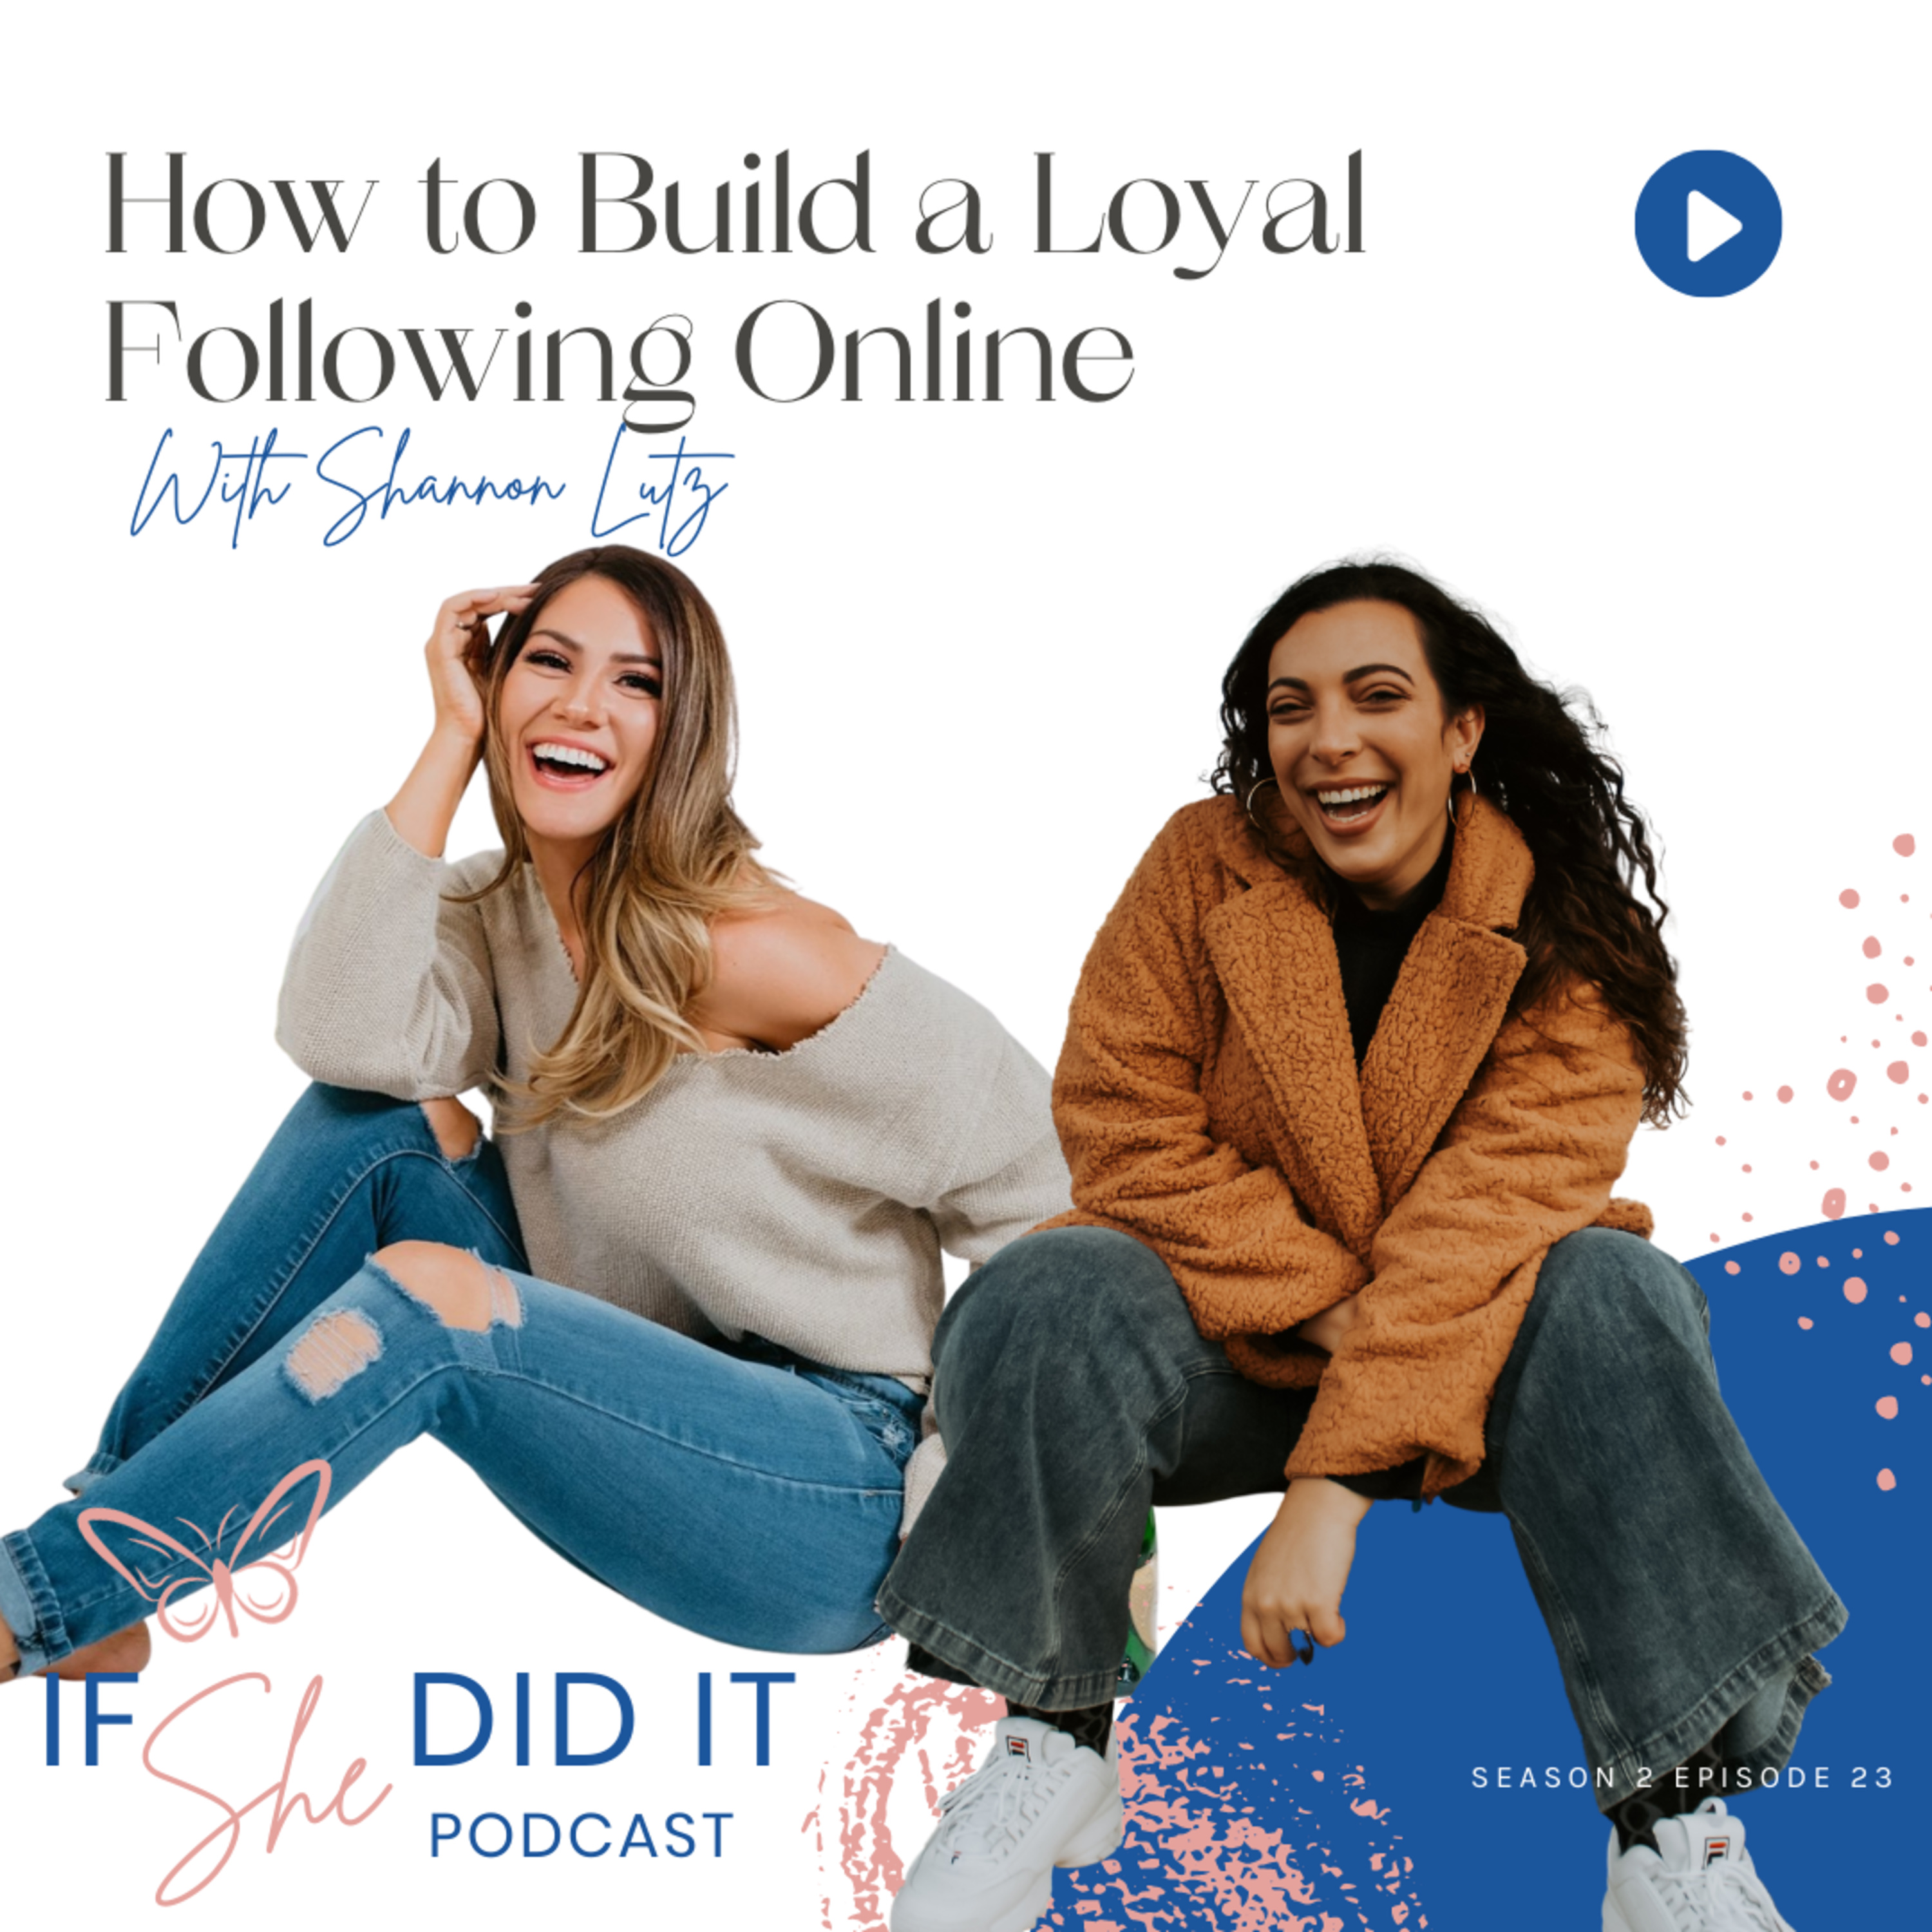 How to Build a Loyal Following Online